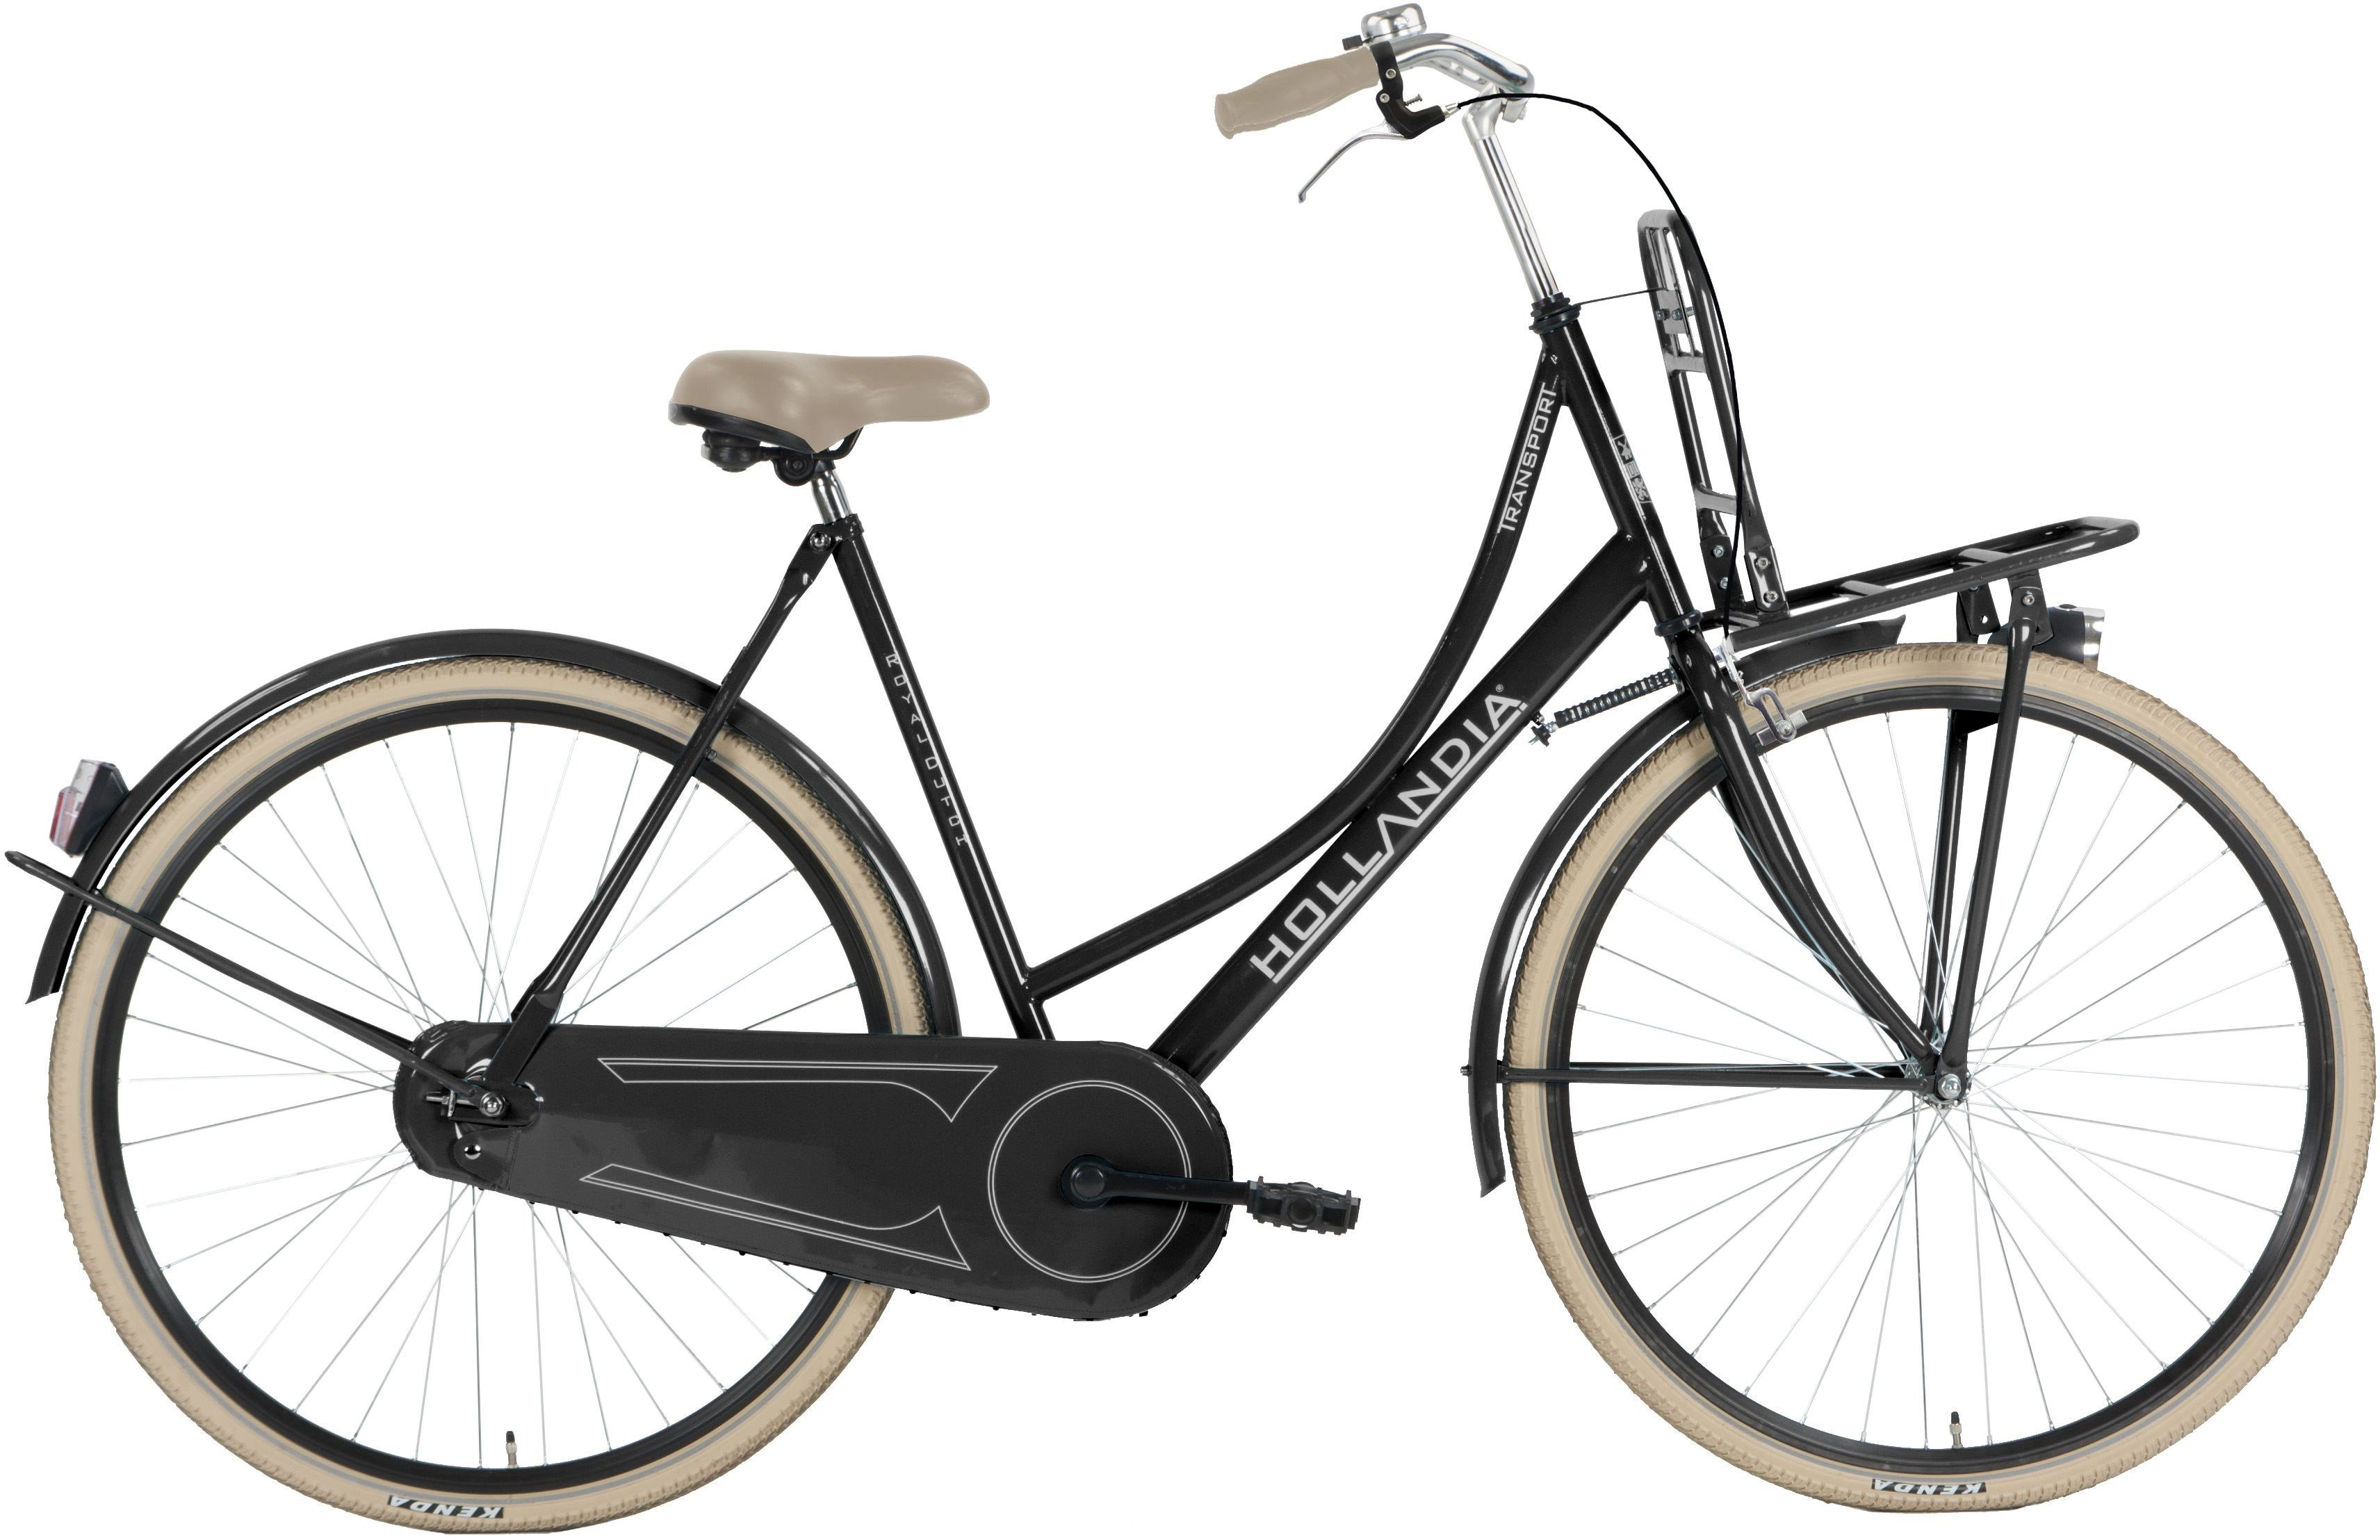 Hollandia Damen Citybike, 28 Zoll, Singlespeed, Rücktritt, »Transport«